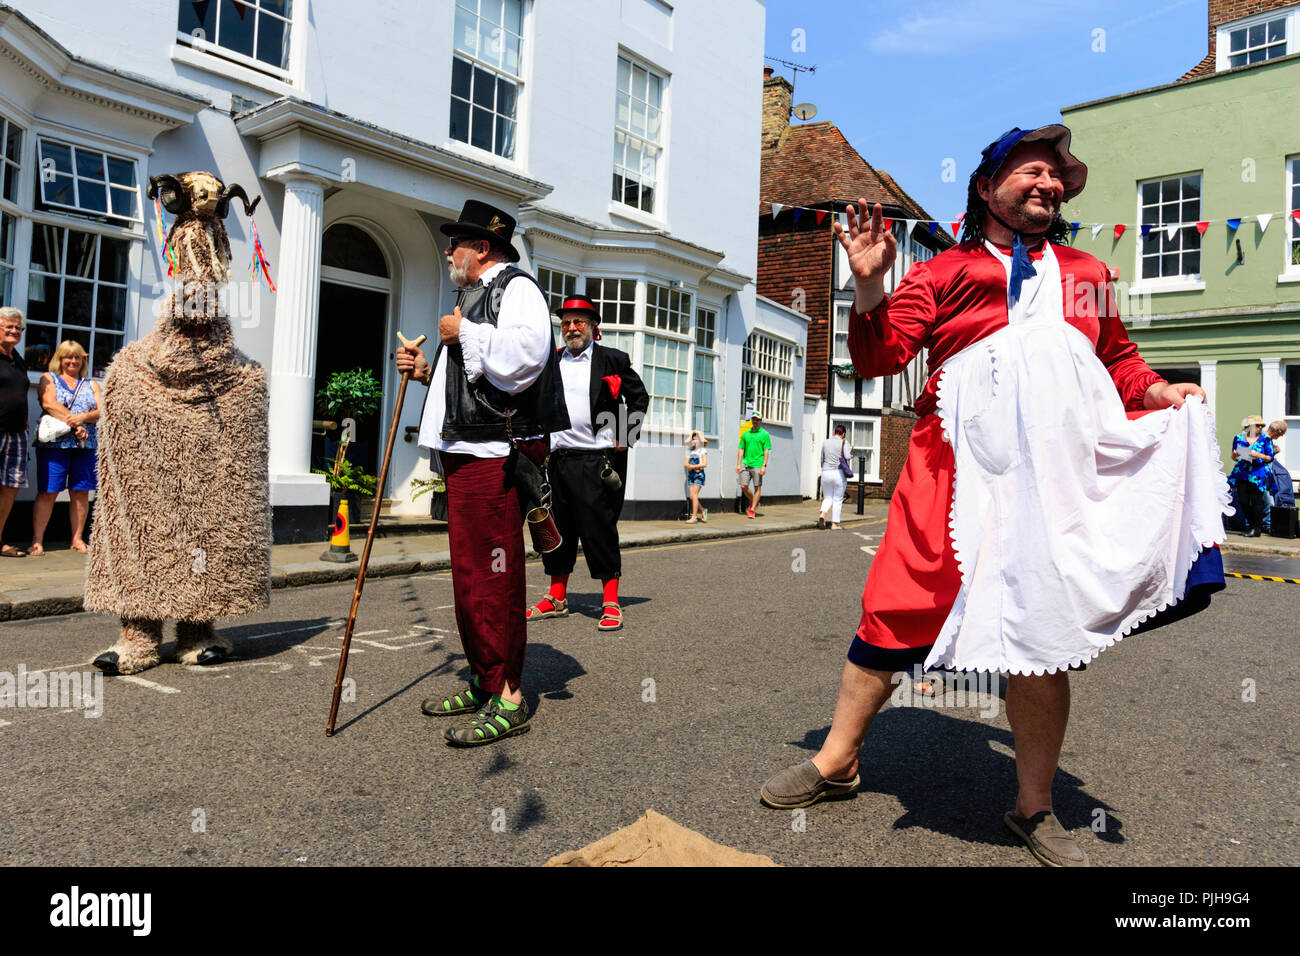 The Thameside Mummers perform a mummer play in the medieval town of Sandwich. Men dressed up as various characters including a ram and housewife. - Stock Image